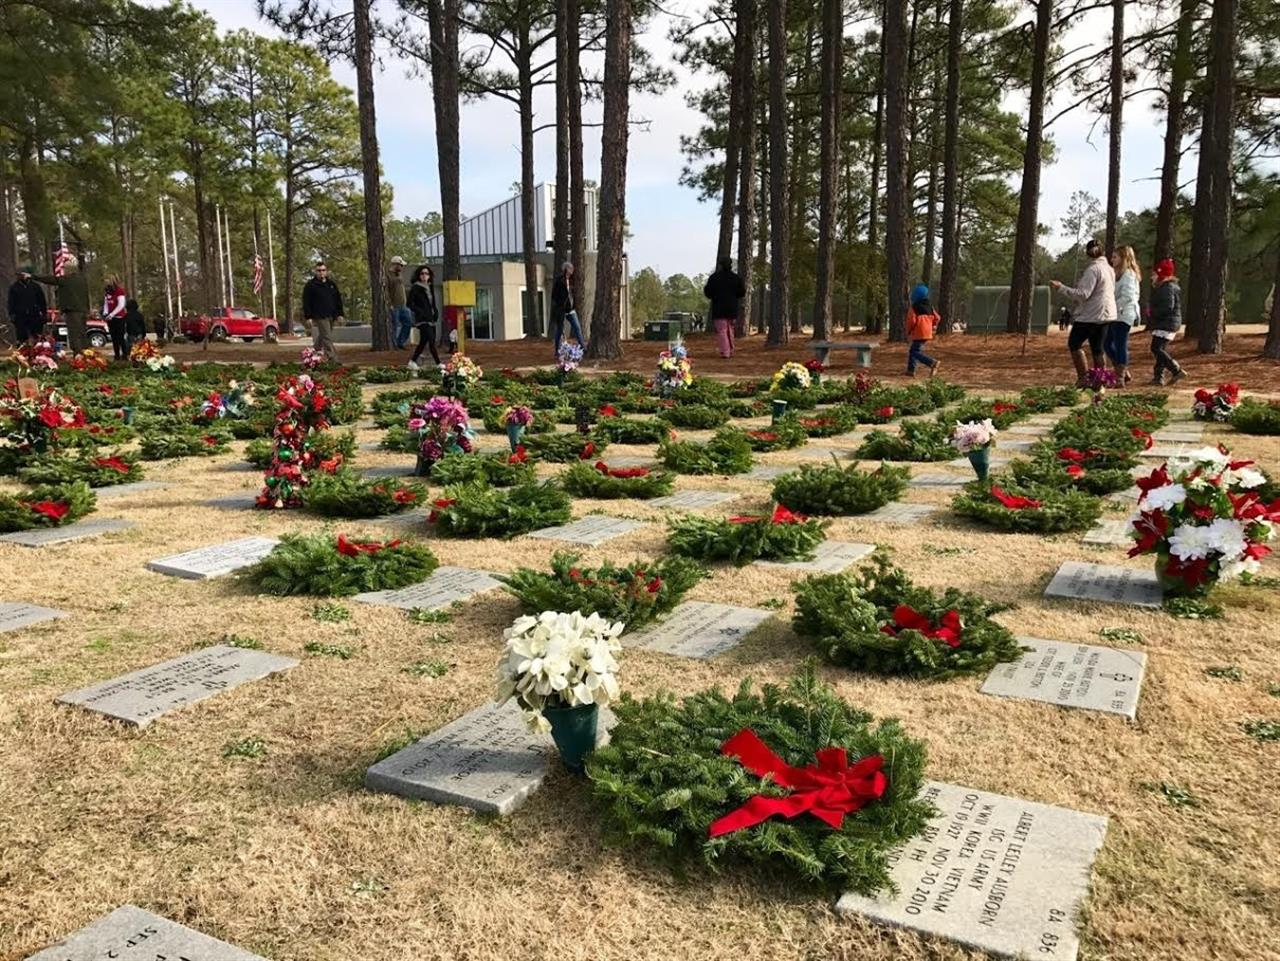 Wreaths Across America sponsored wreath-laying at Sandhills State Veterans Cemetery in Fayetteville, North Carolina.  Submitted by Lee McMillan